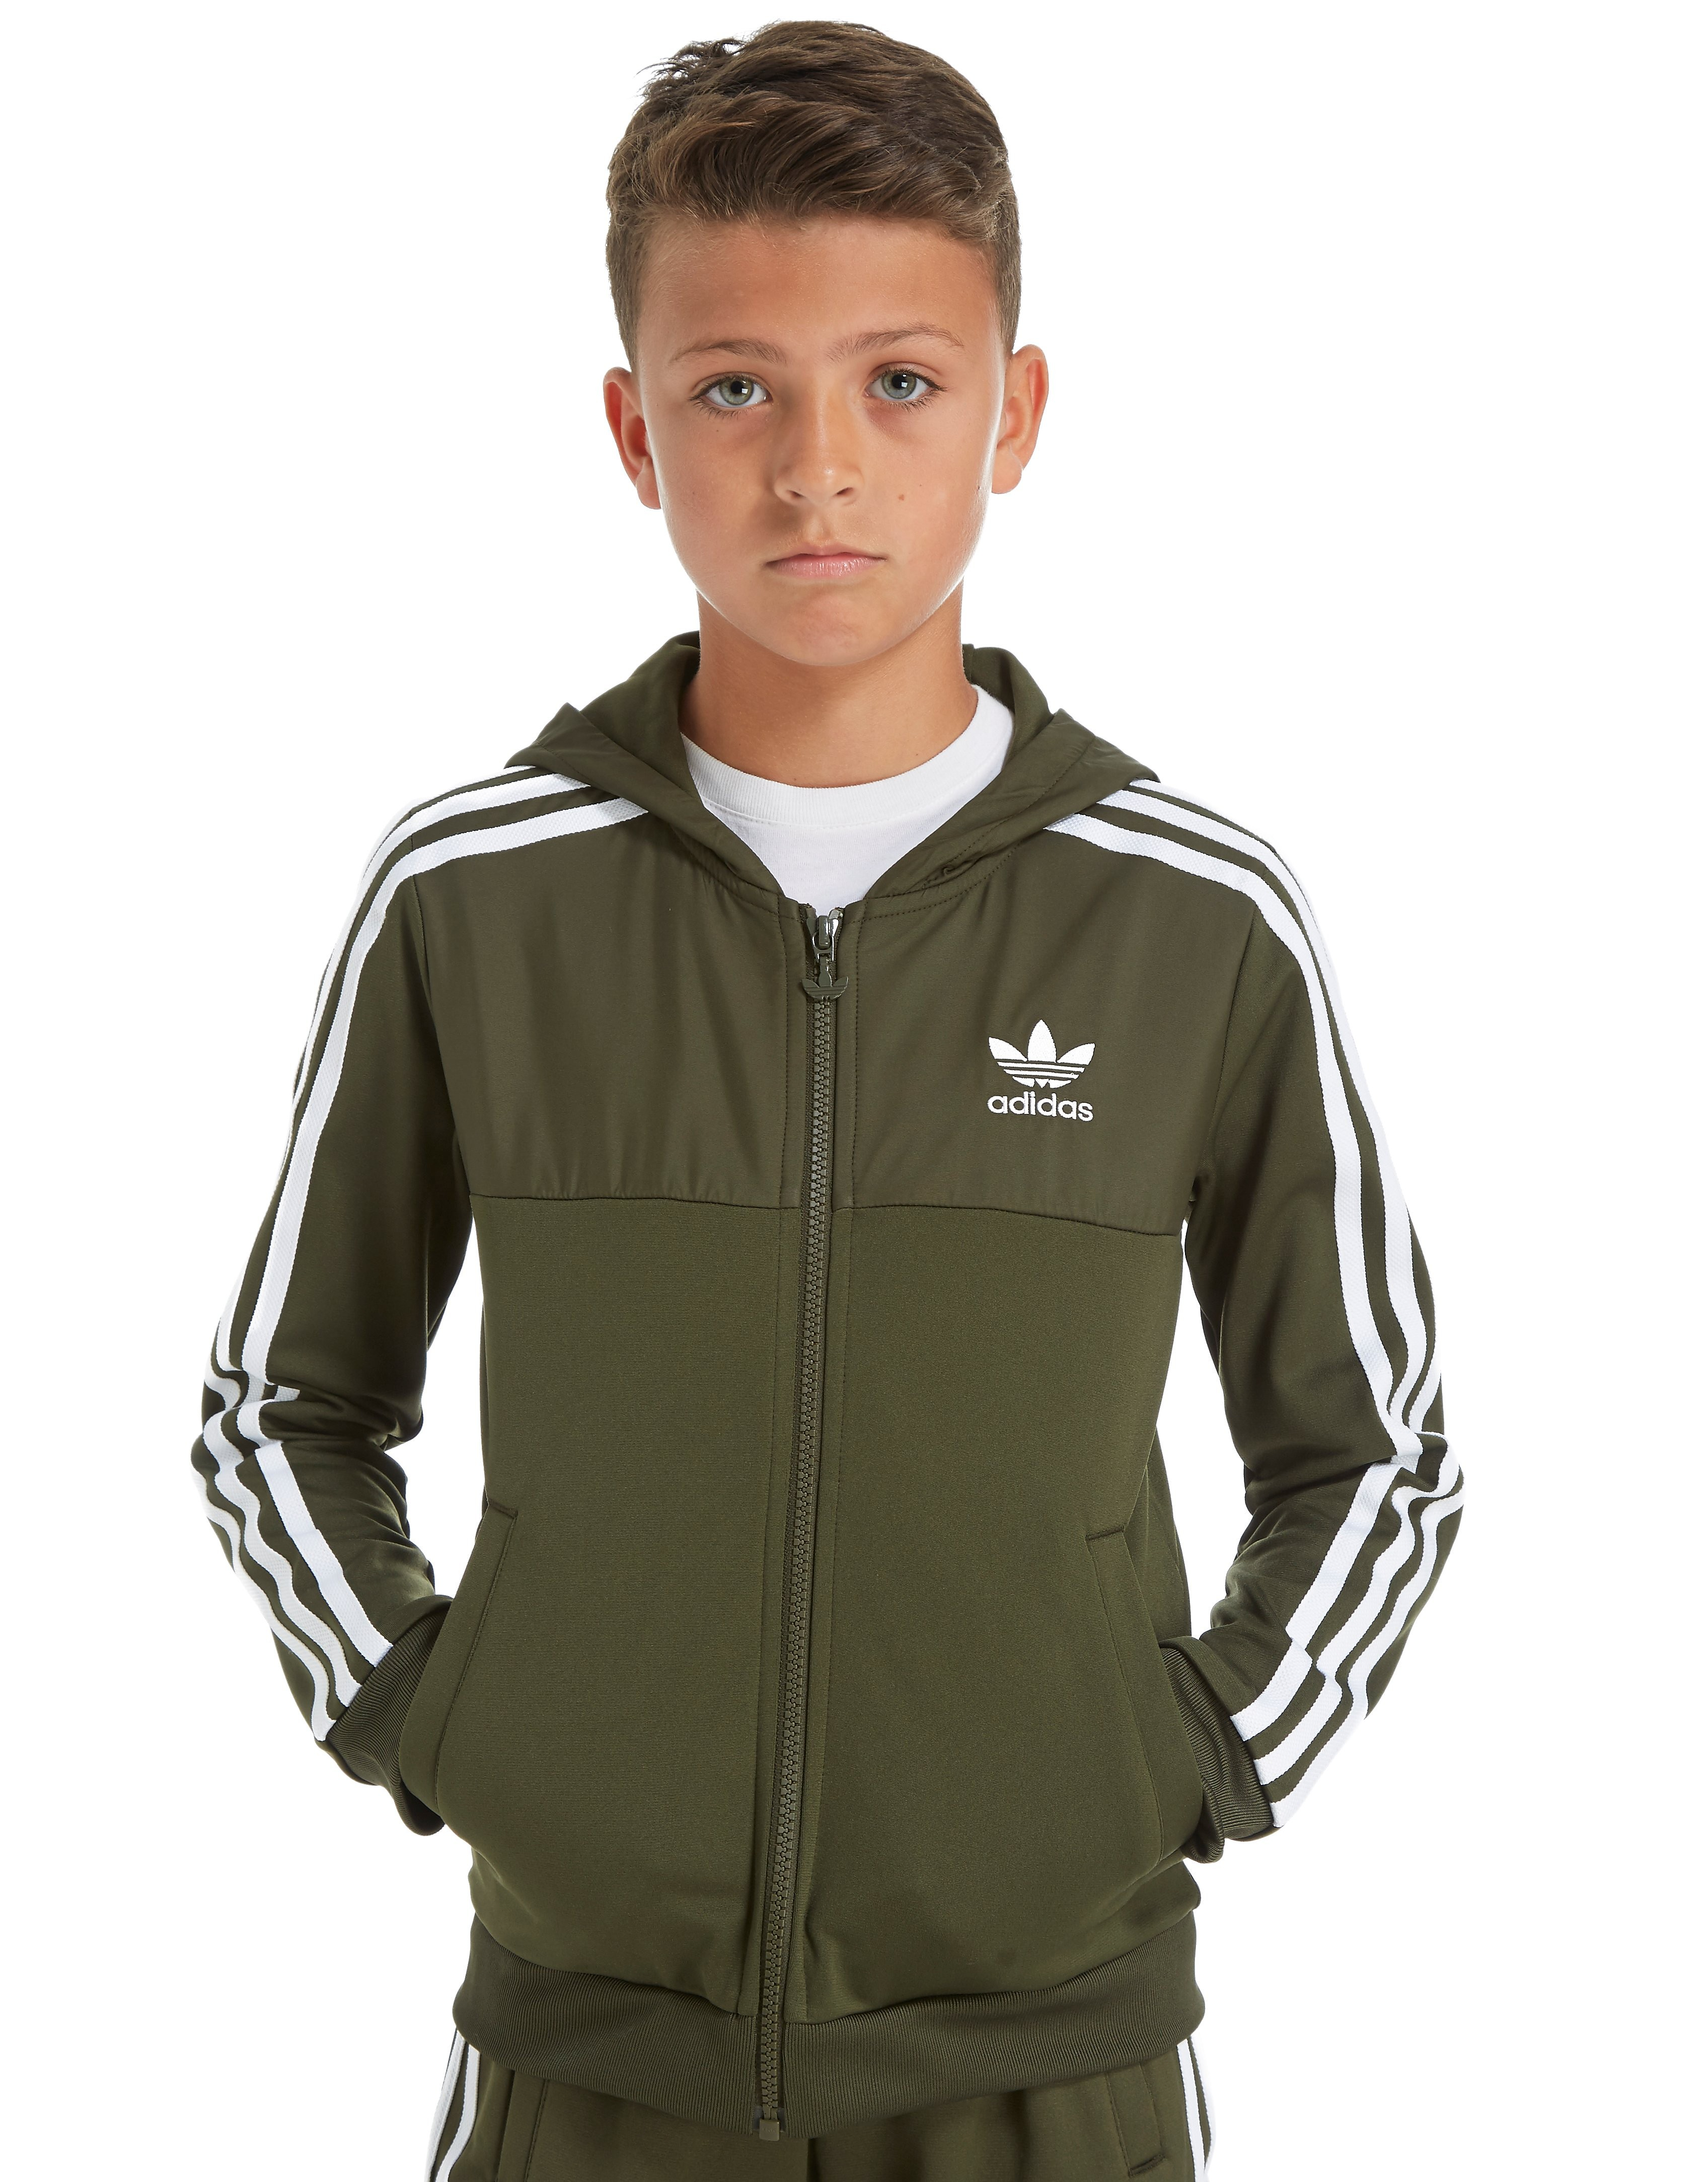 adidas Originals Overlay Hoody Junior